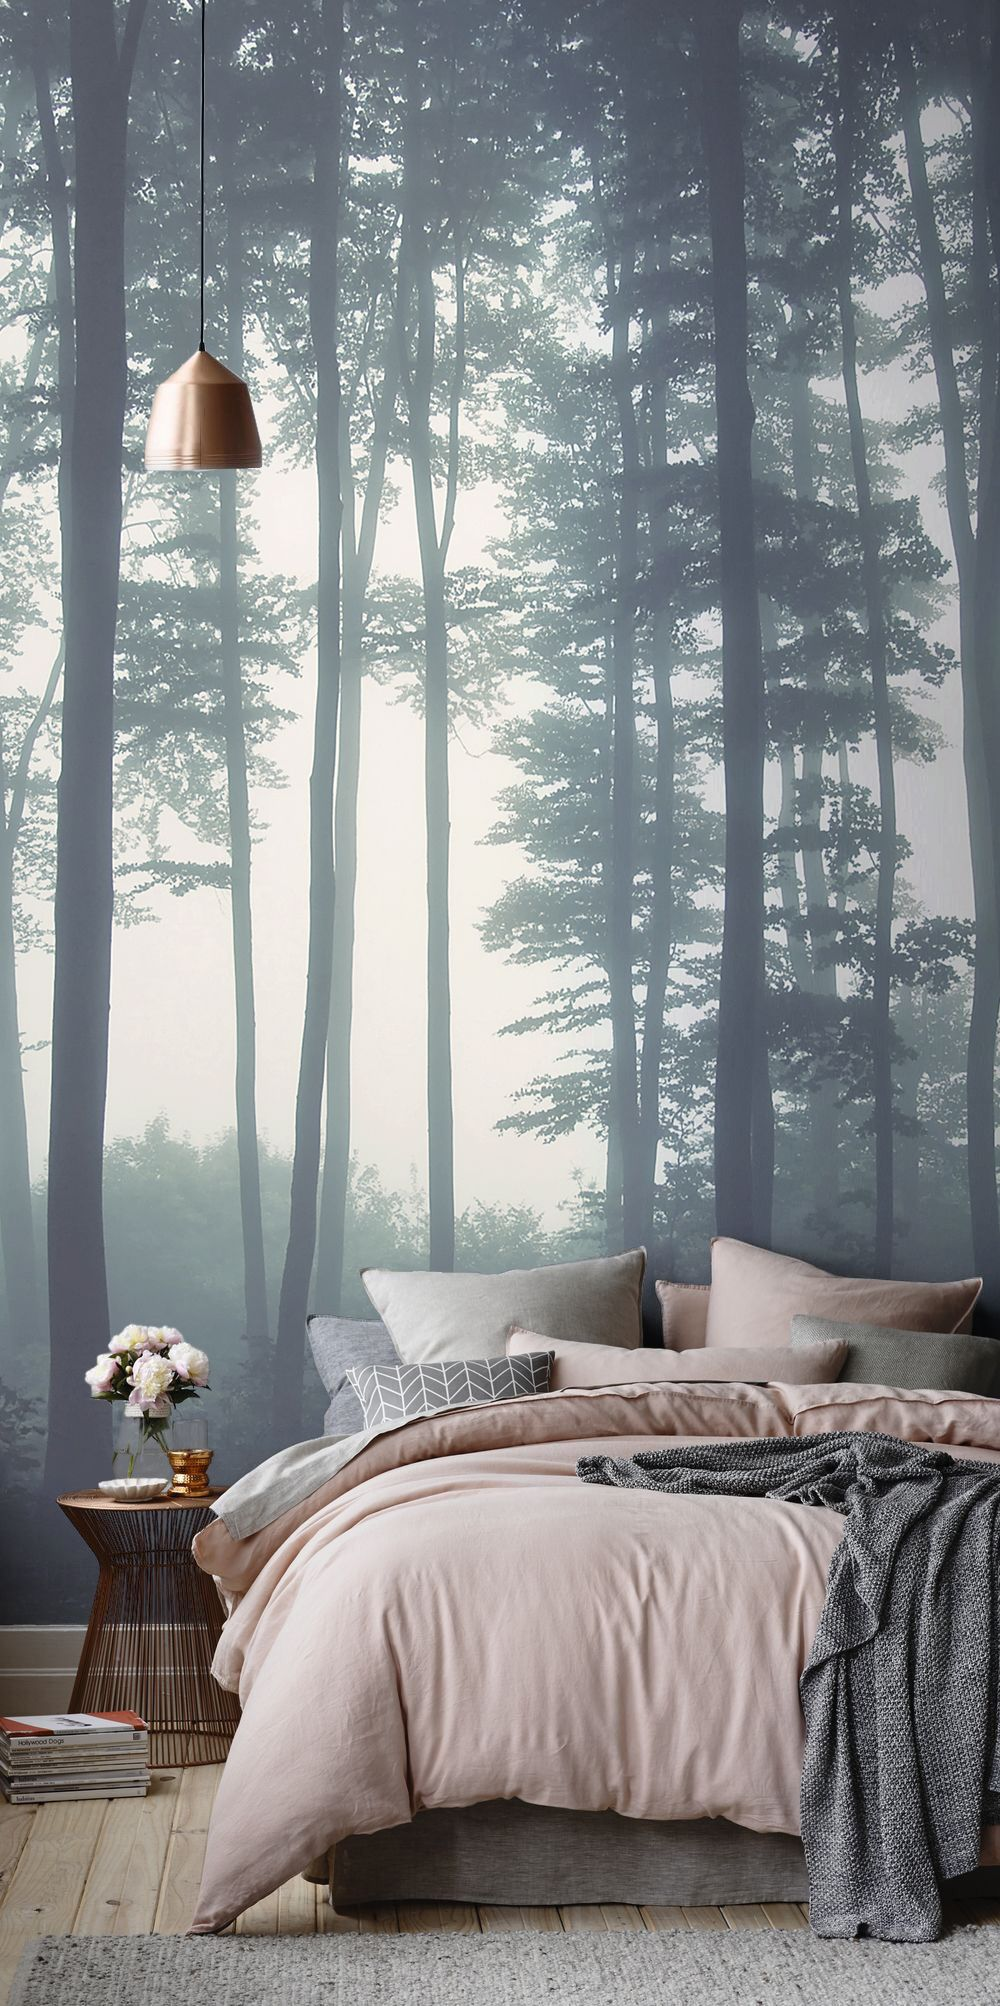 Sea of Trees Forest Mural Wallpaper | MuralsWallpaper.co.uk ...